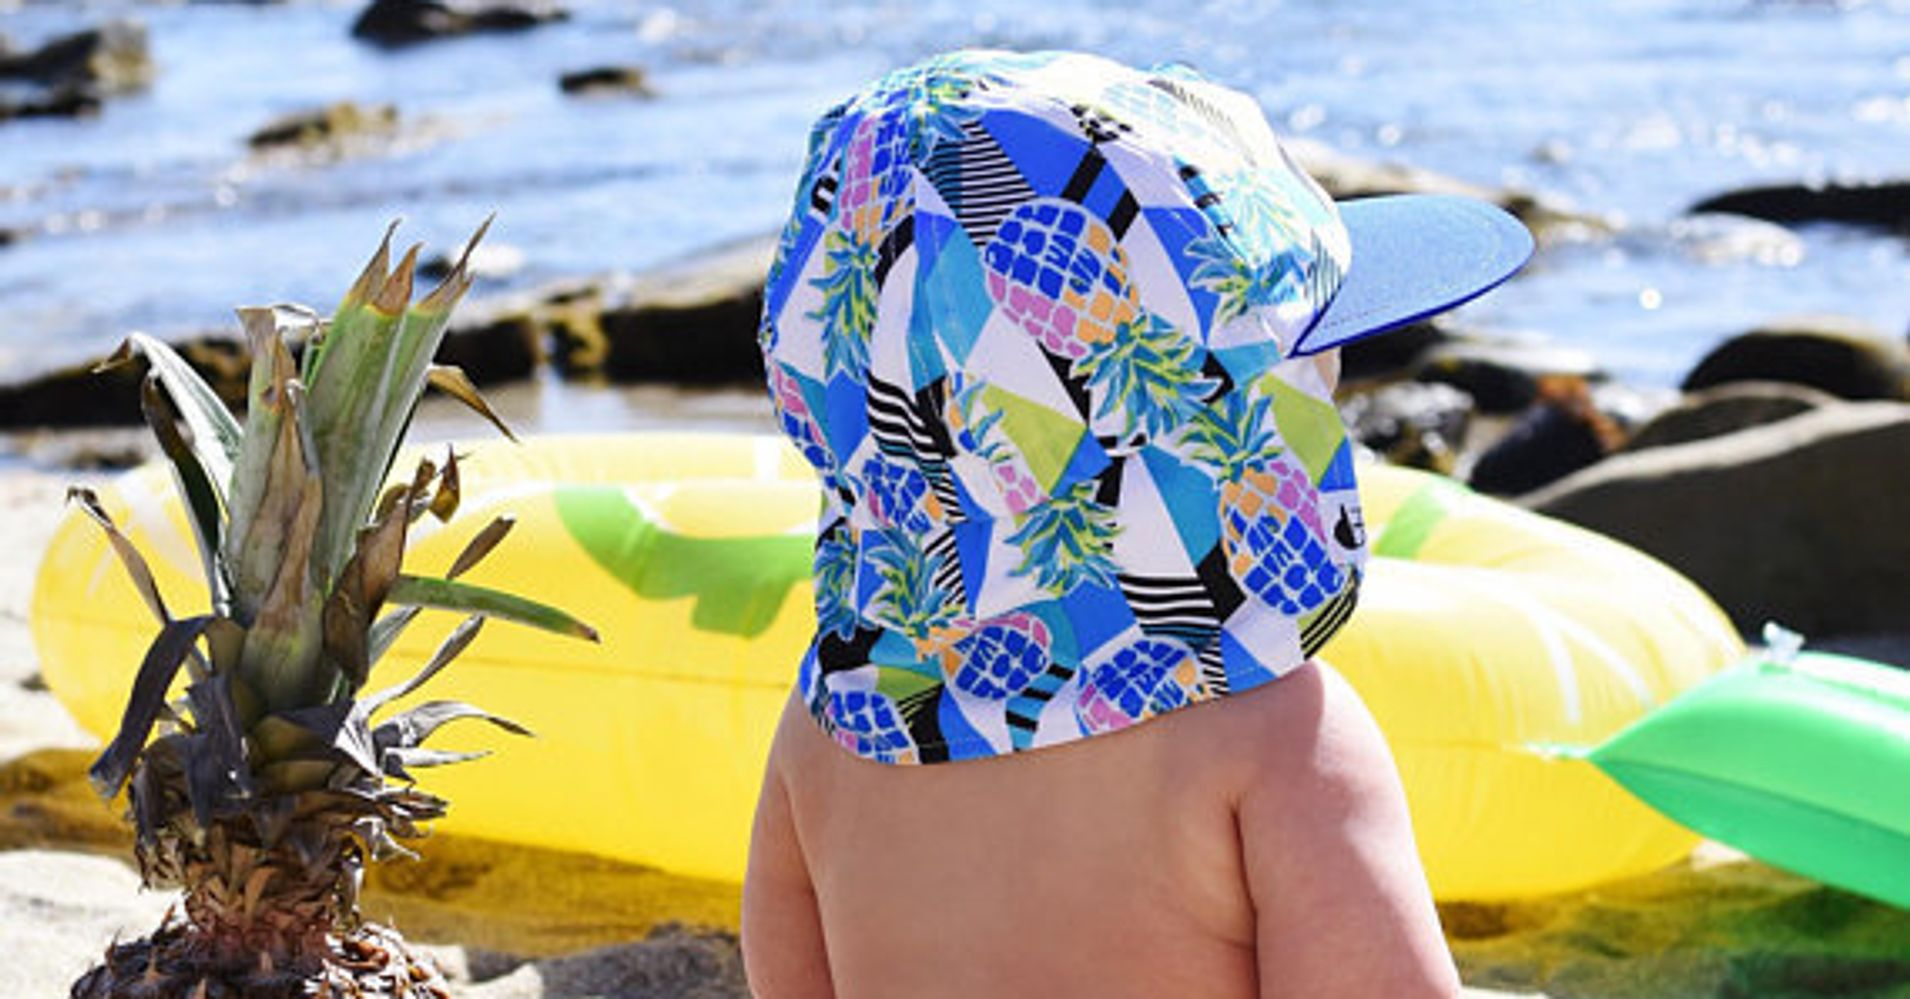 ac1100ad 20 Adorable Sun Hats For Babies To Protect Them All Summer Long | HuffPost  Life